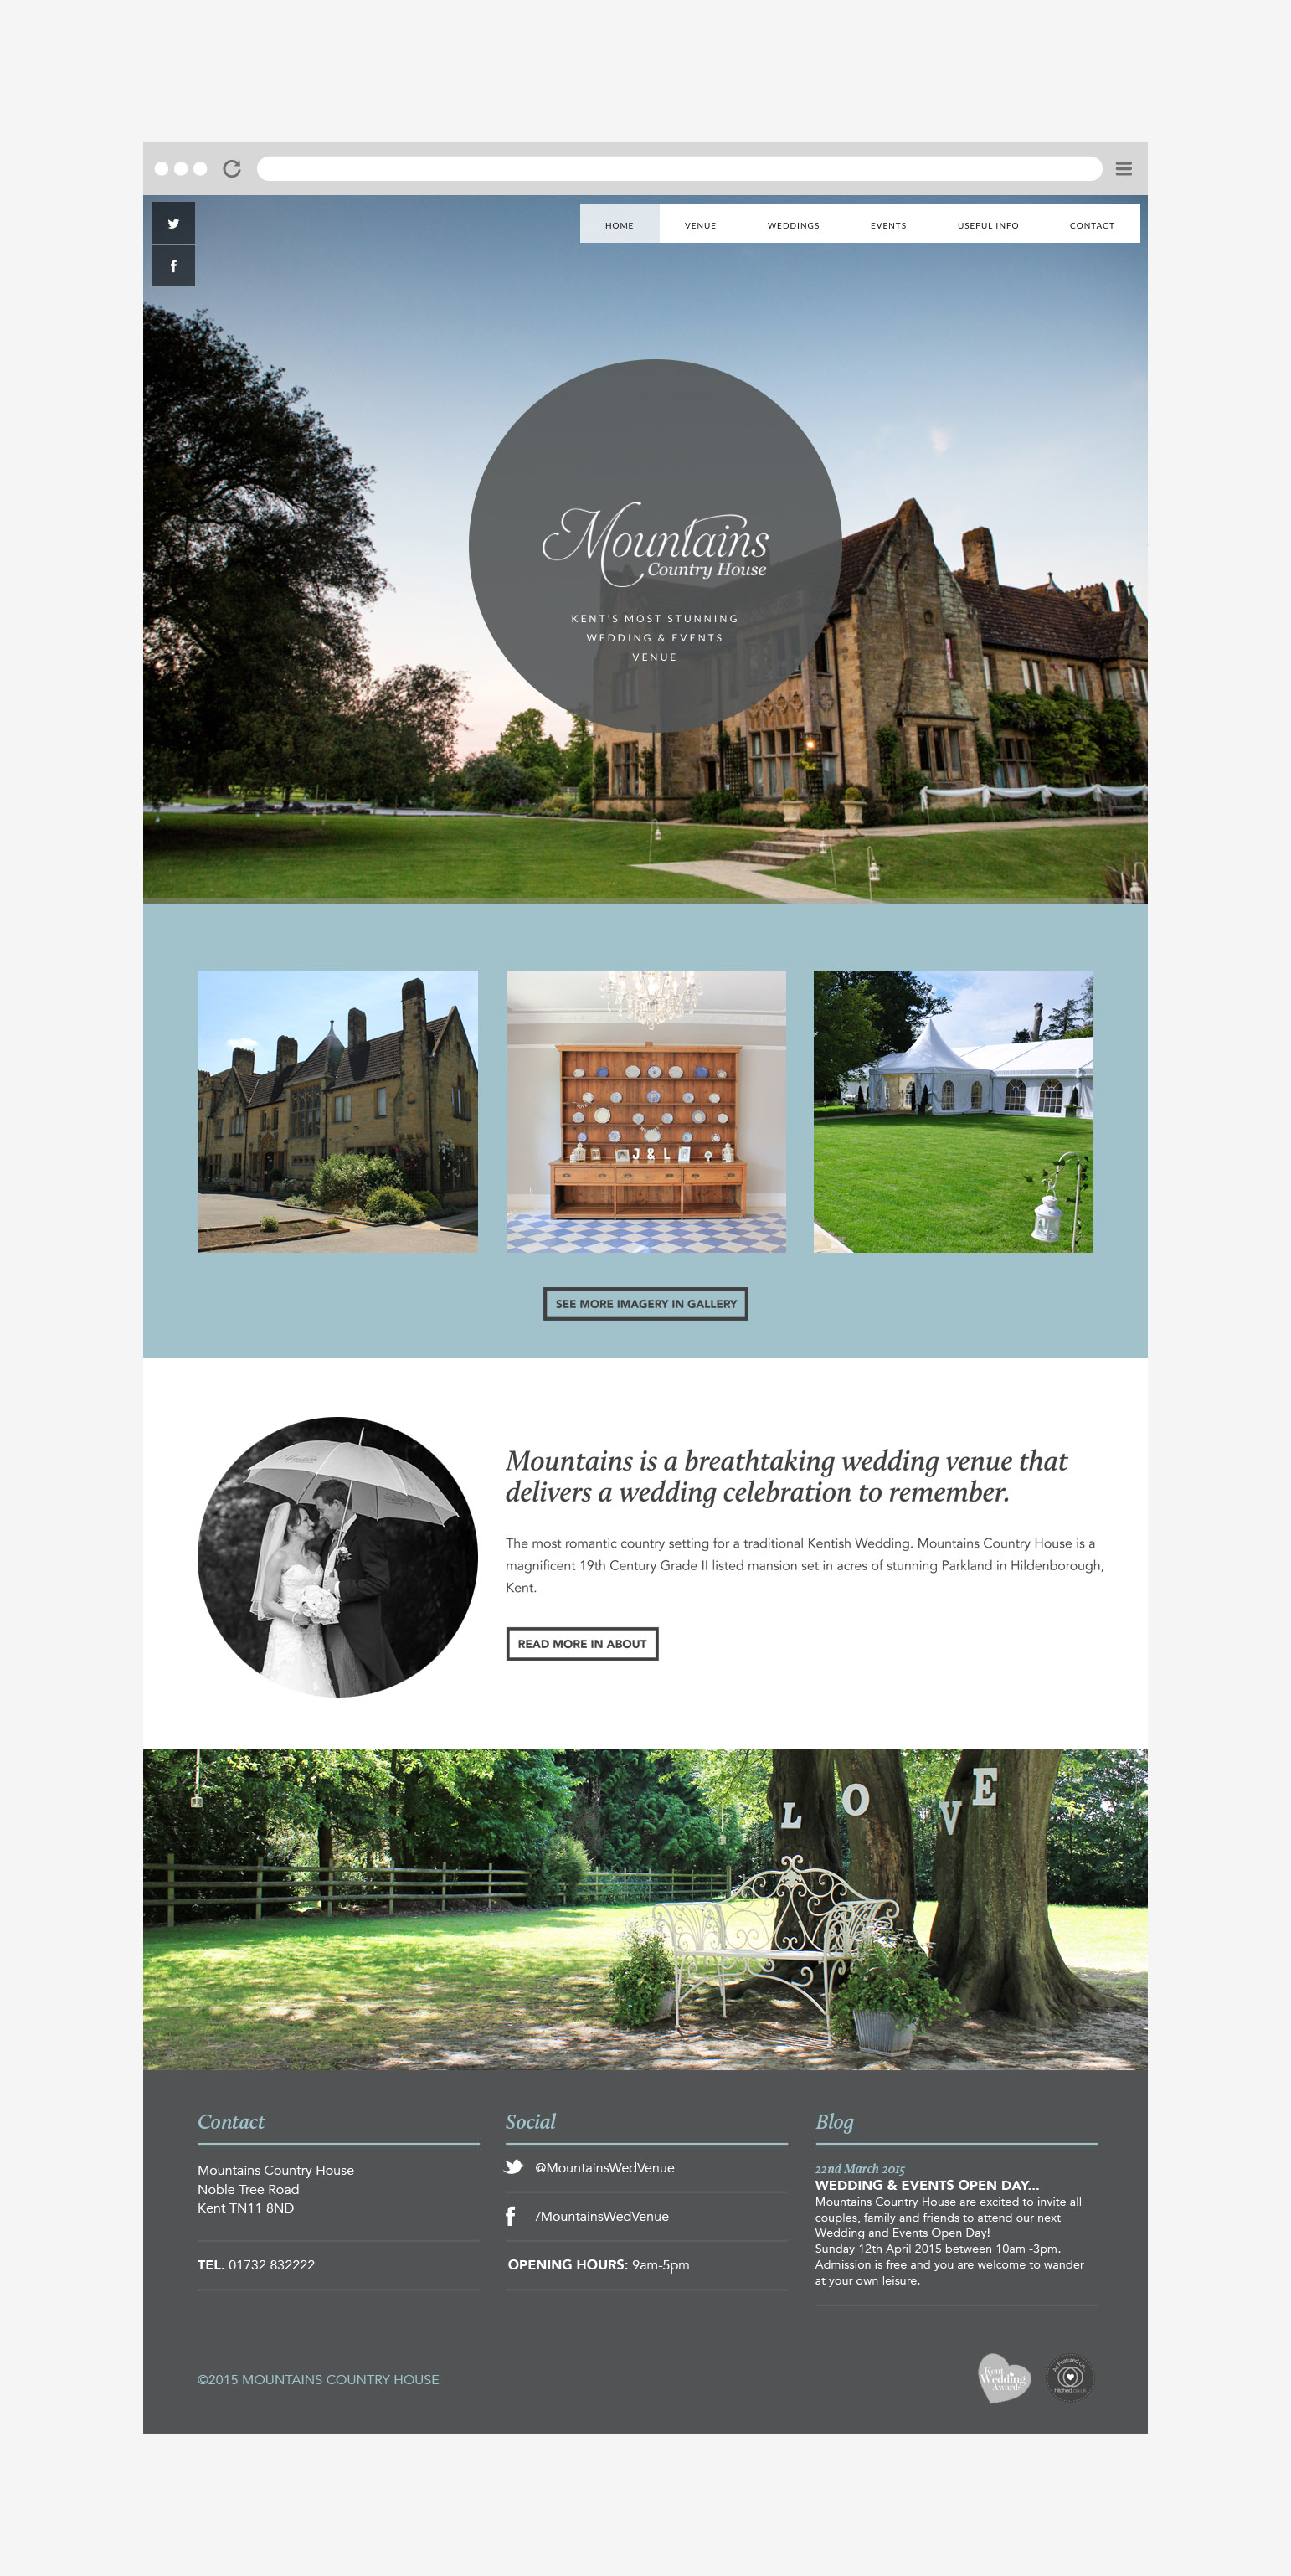 matthew_pomorski_kent_maidstone_graphic_web_designer_mountains_country_house_wedding_venue